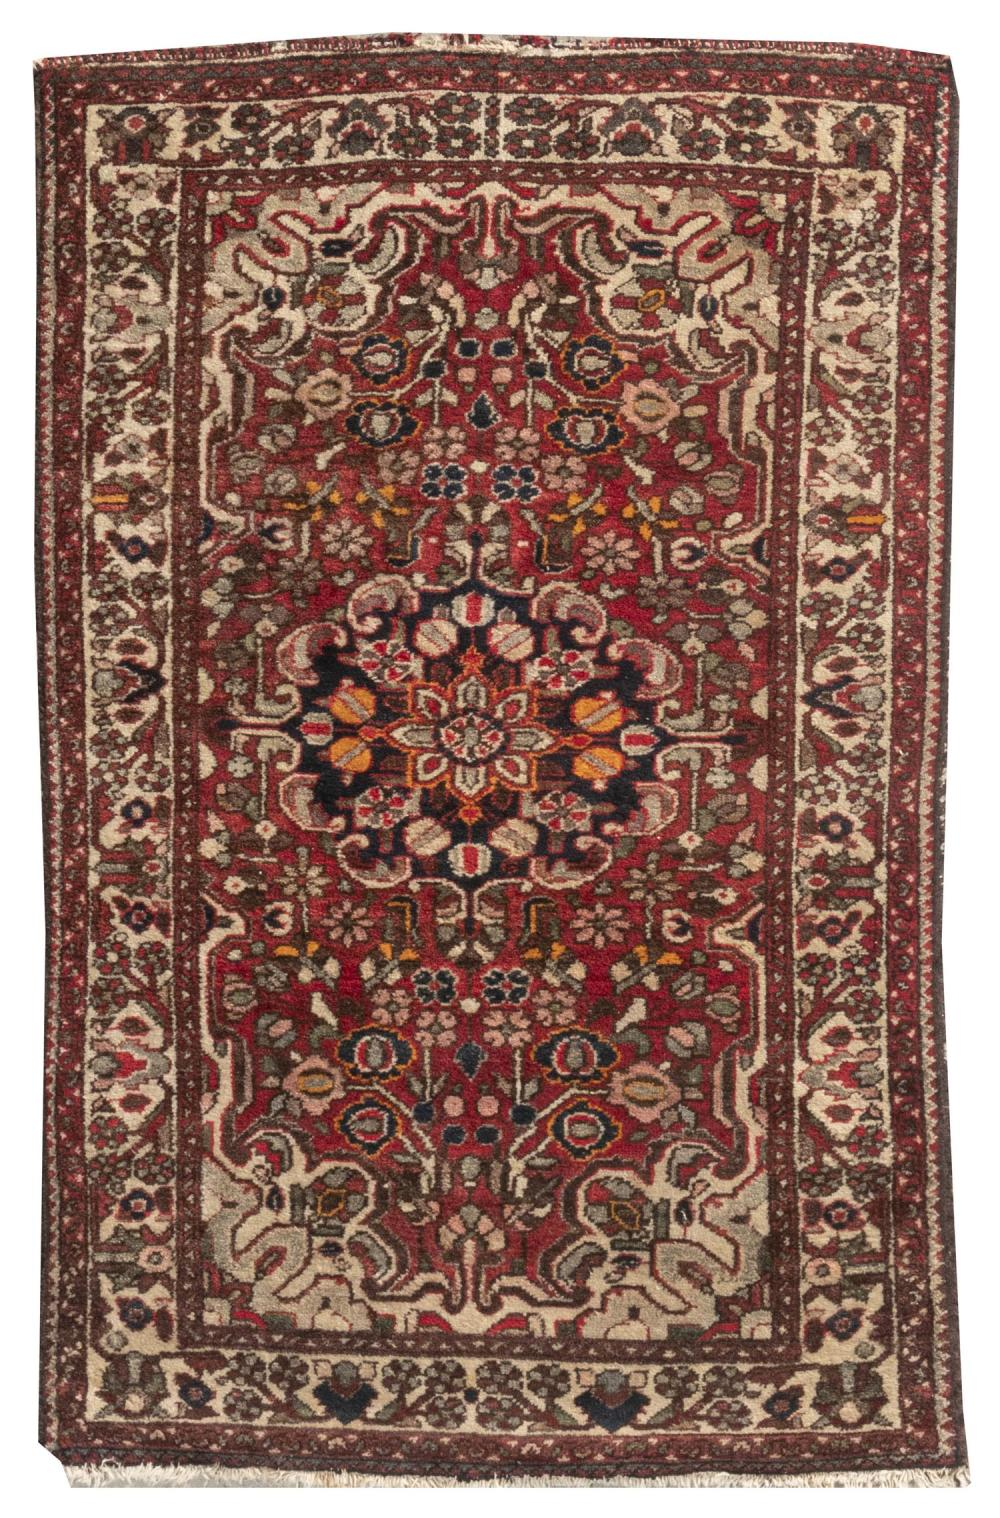 "ORIENTAL RUG: HAMADAN 3'4"" x 5'2"" Midnight blue medallion at the center of a dark red field with gray and ivory spandrels. Flower bl."